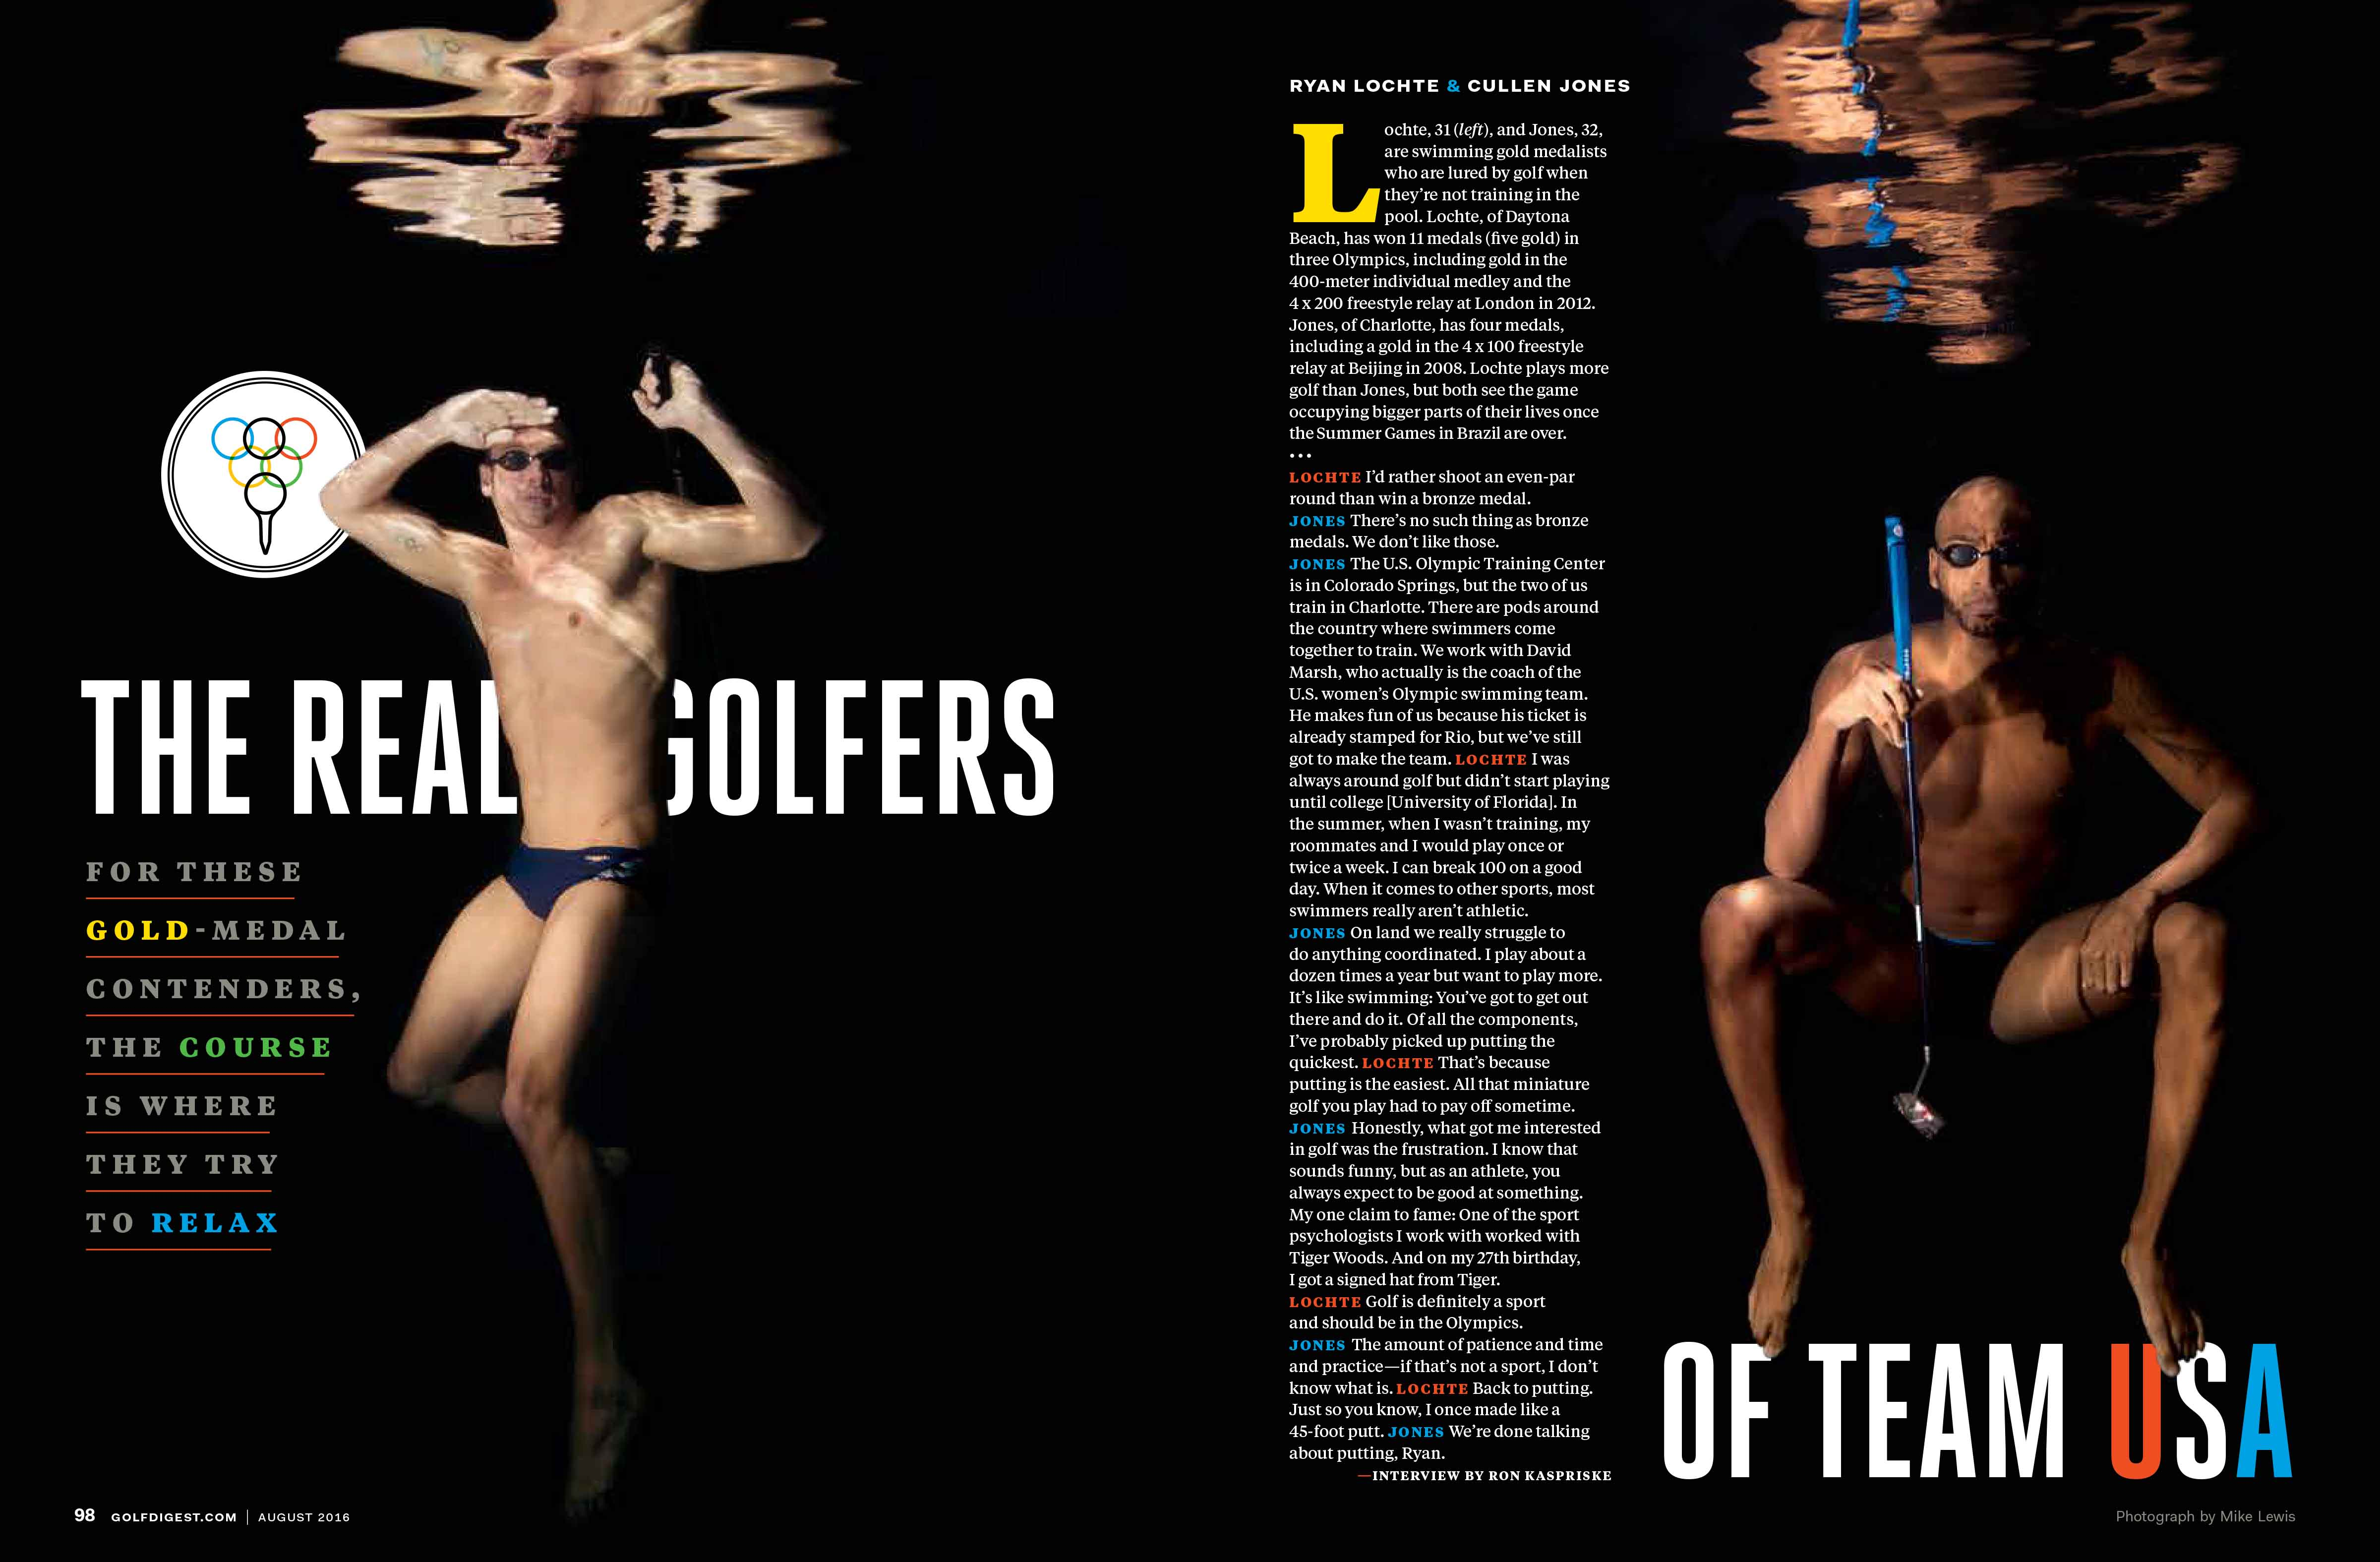 Cullen Jones and Ryan Lochte for Golf Digest by Mike Lewis